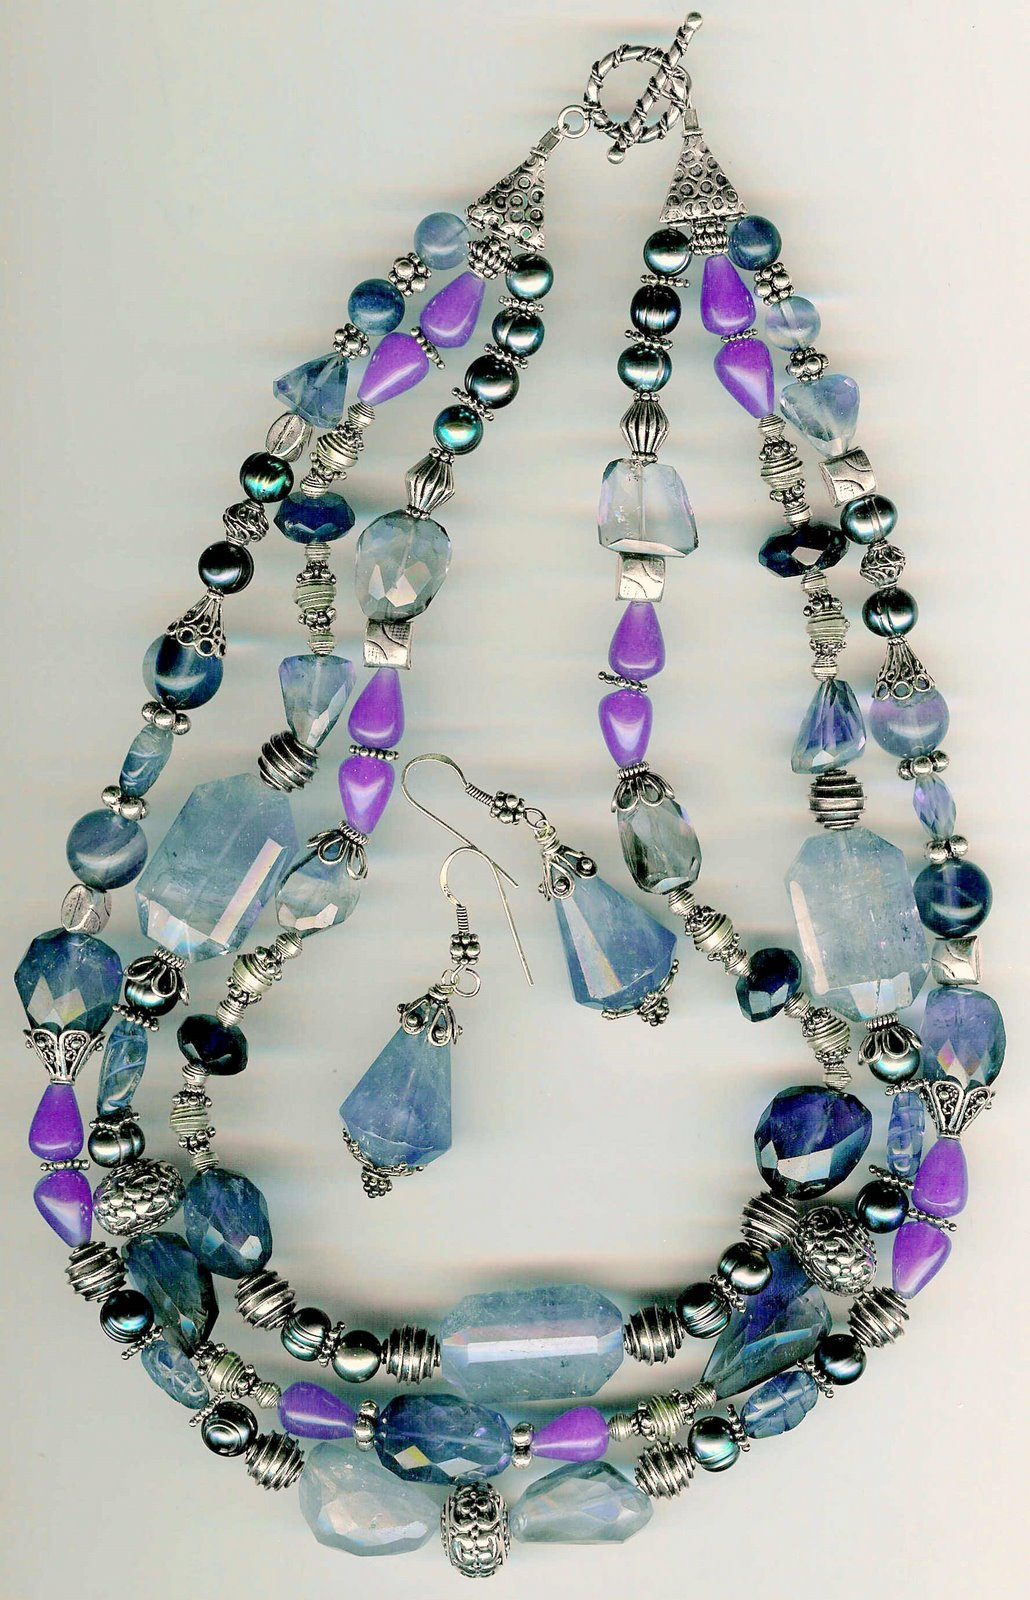 26. Amethysts, Jade, Crystals, Freshwater Pearls with Bali Sterling Siver + Earrings